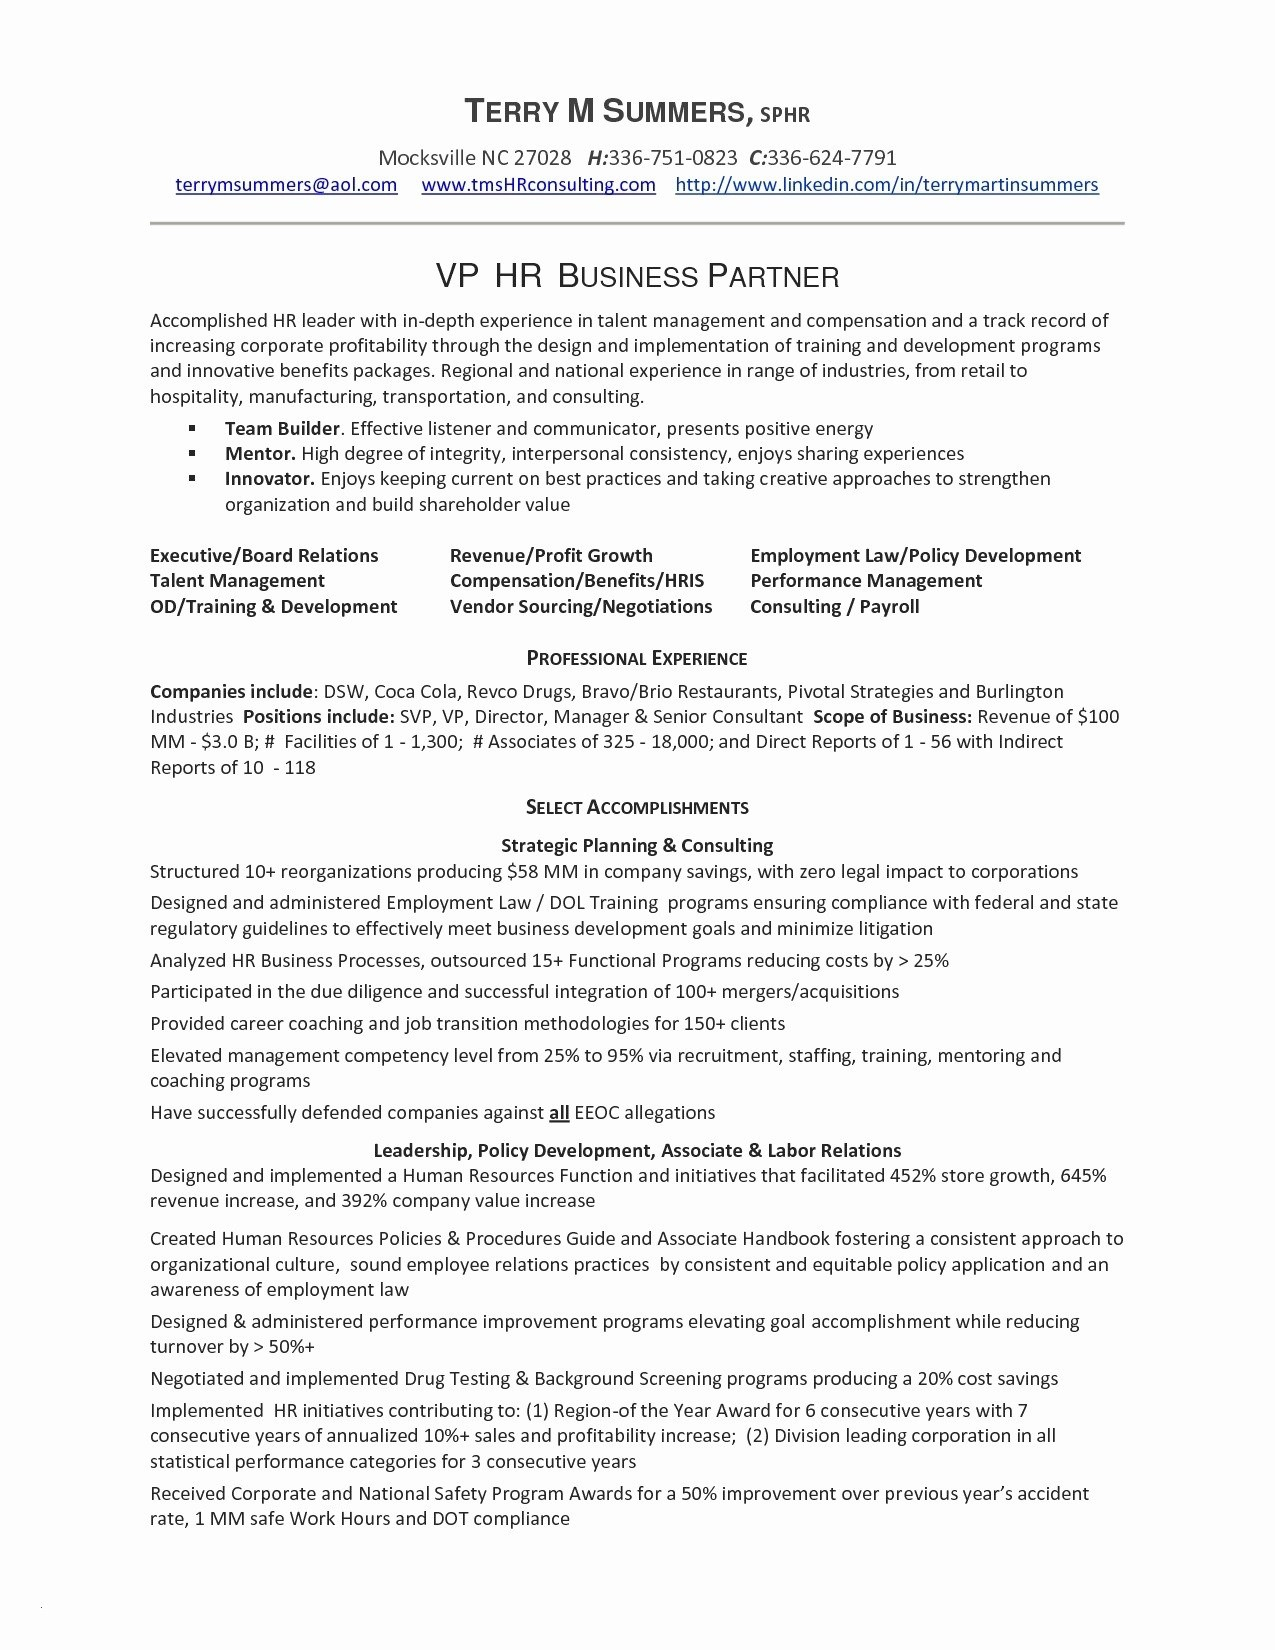 Data Analyst Job Description for Resume - Data Quality Analyst Job Description Inspirationa Entry Level Data